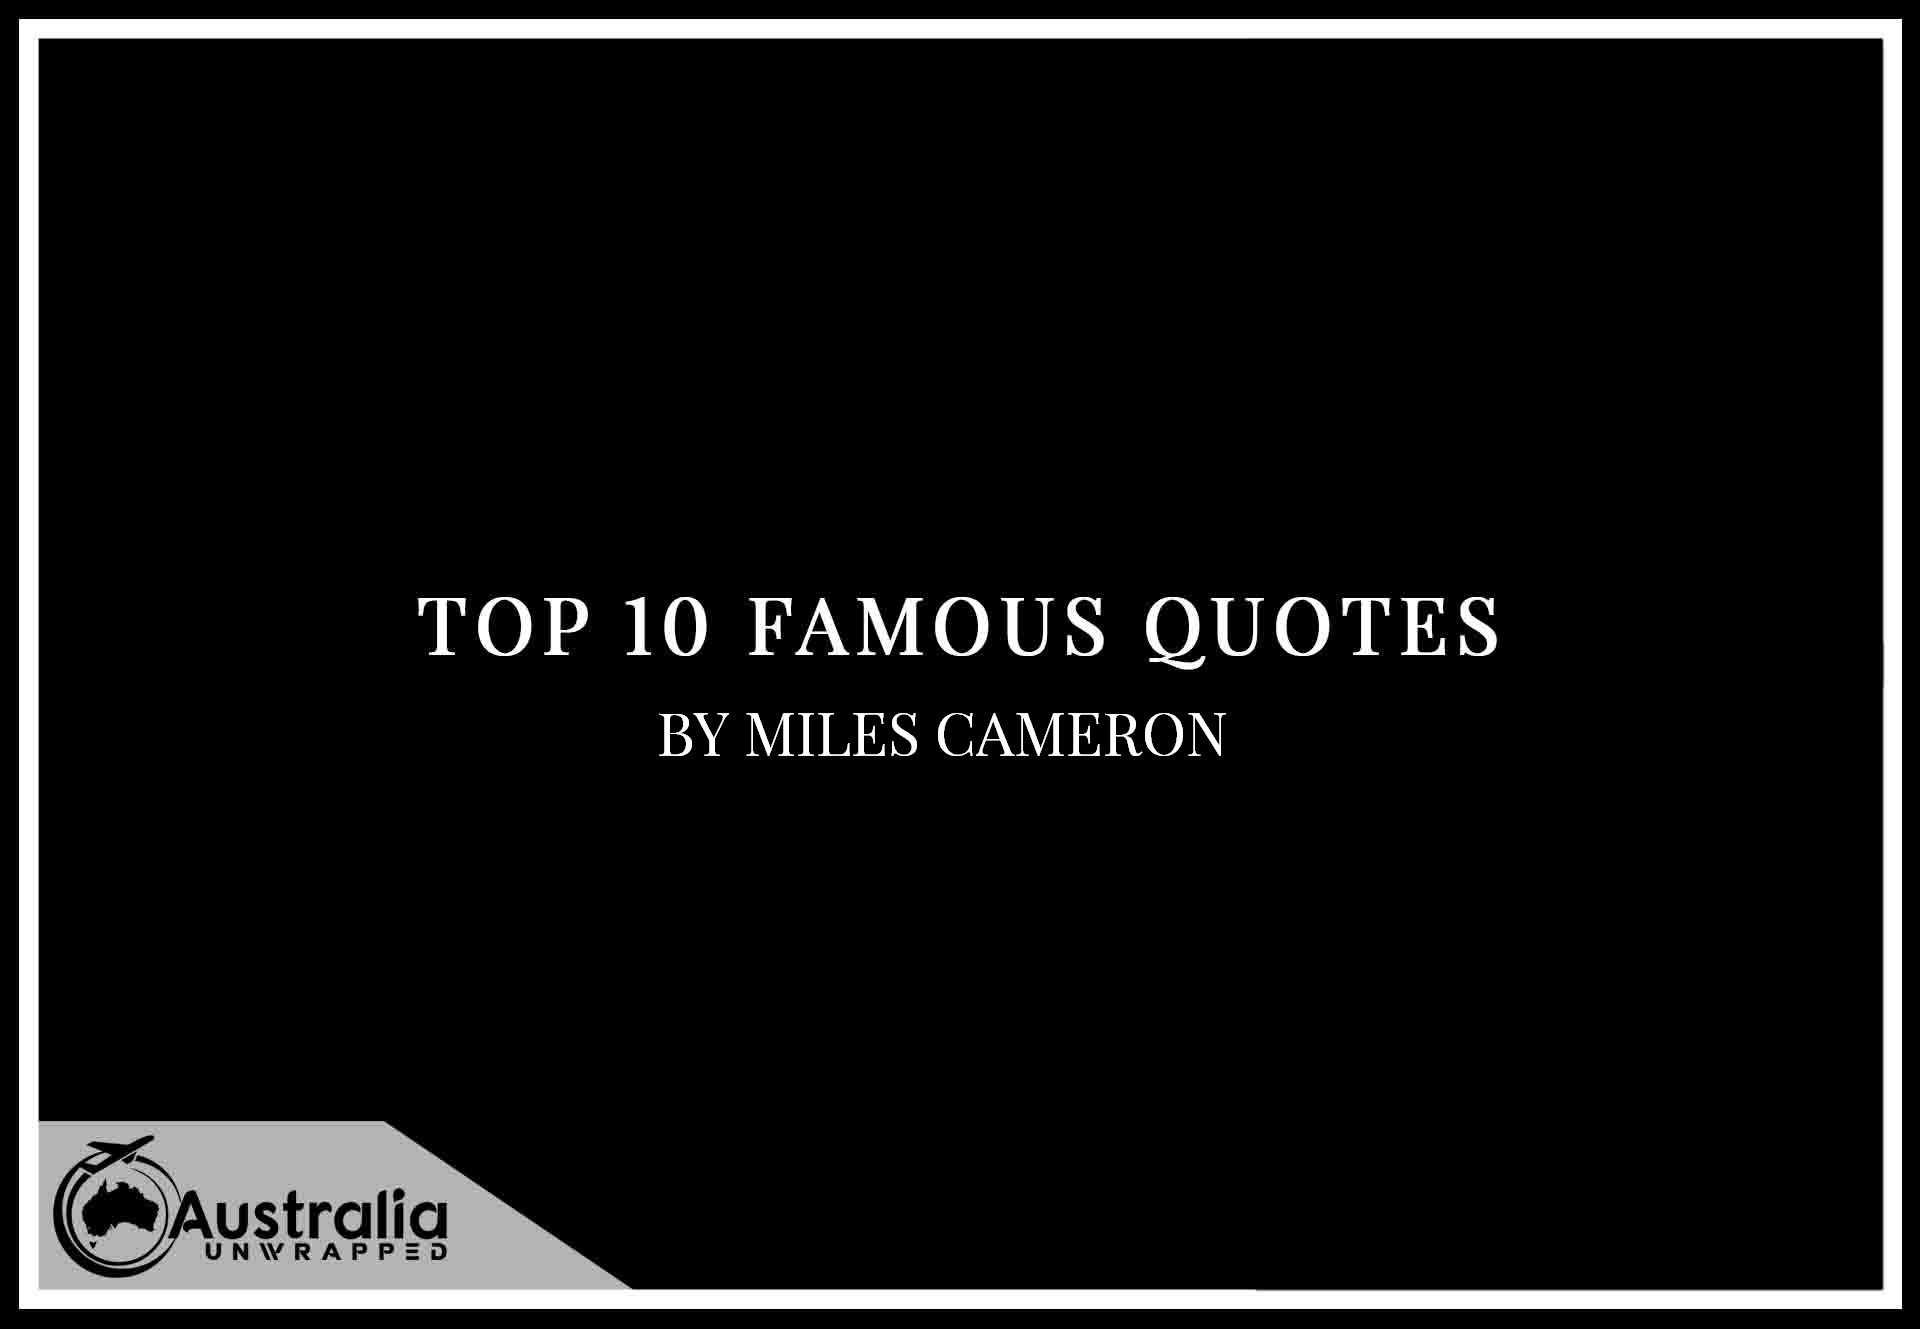 Top 10 Famous Quotes by Author Miles Cameron